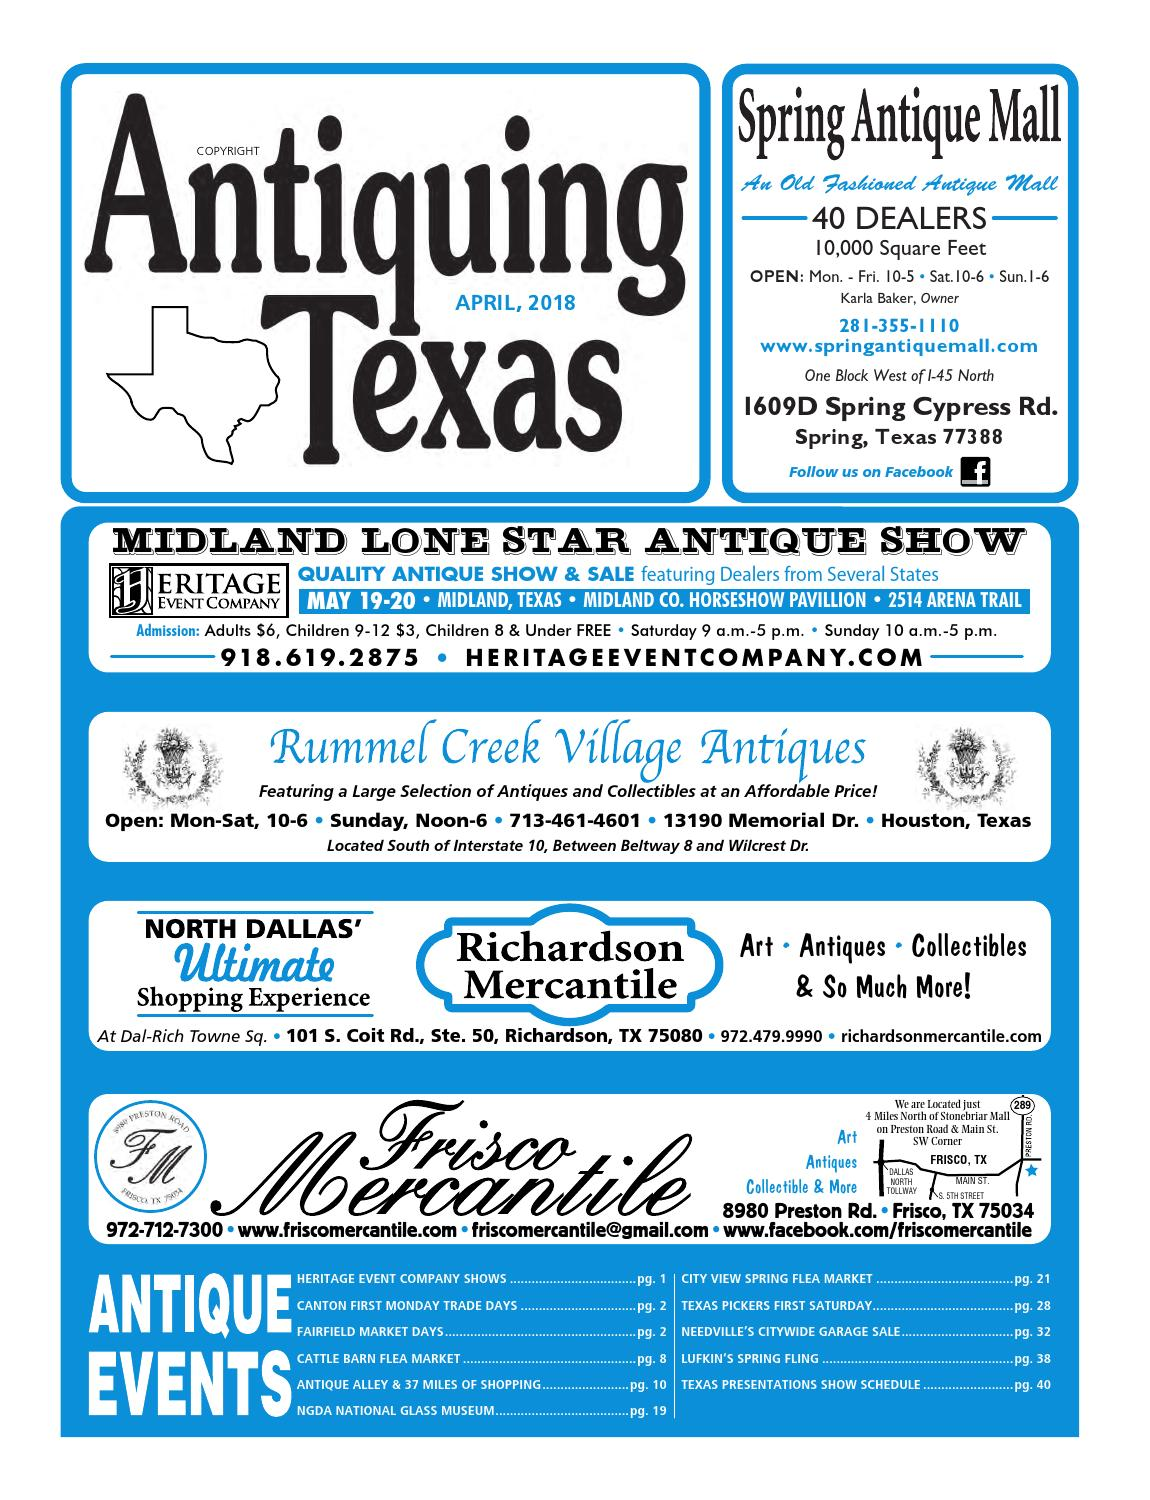 Ant tx upload 4 18 by Antiquing Texas - issuu